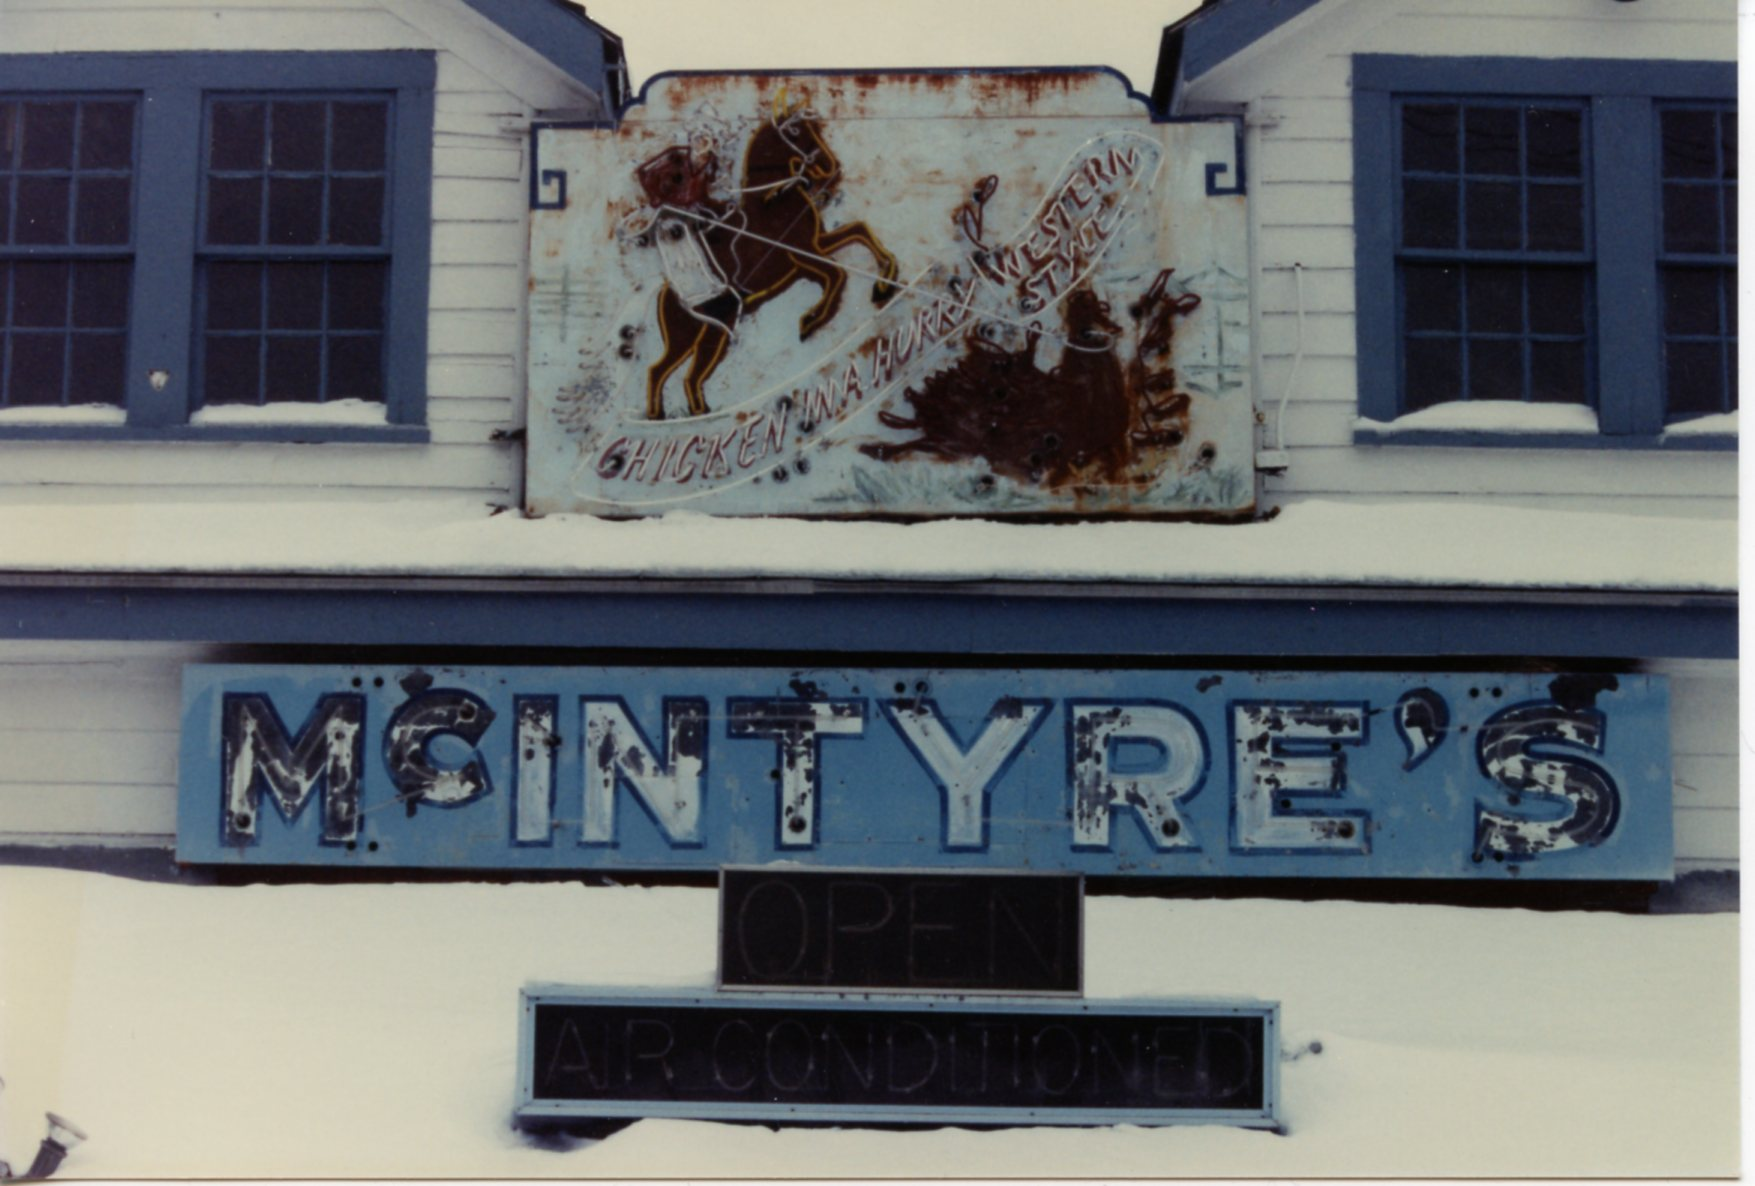 The rusty Chicken in a Hurry sign on its building from 1990.